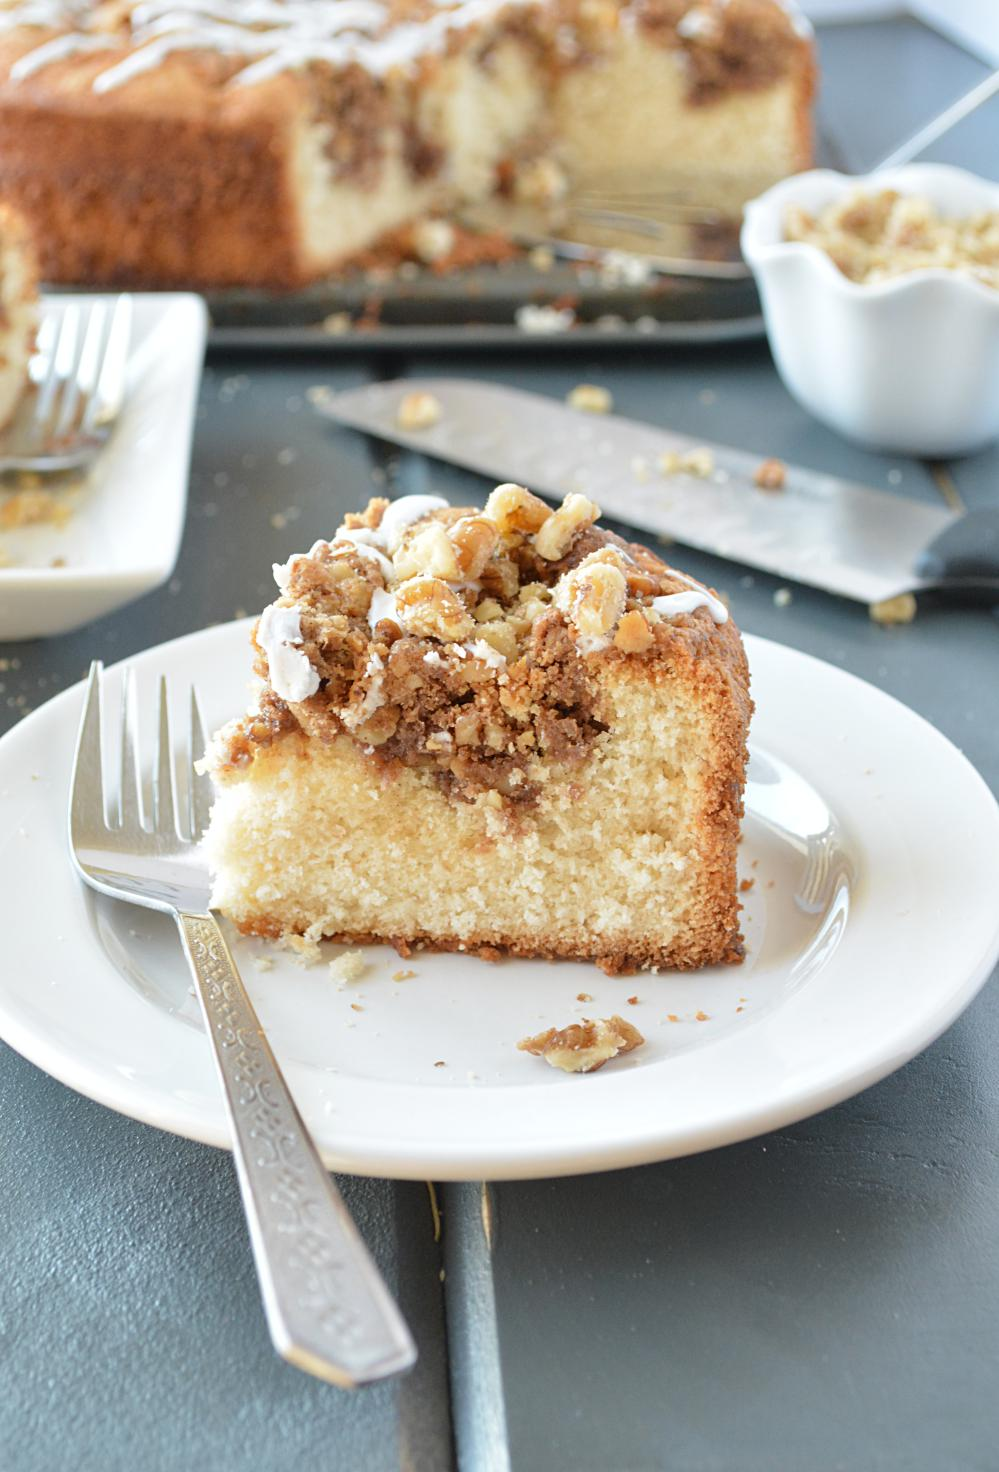 crumble-cake-recipe-5